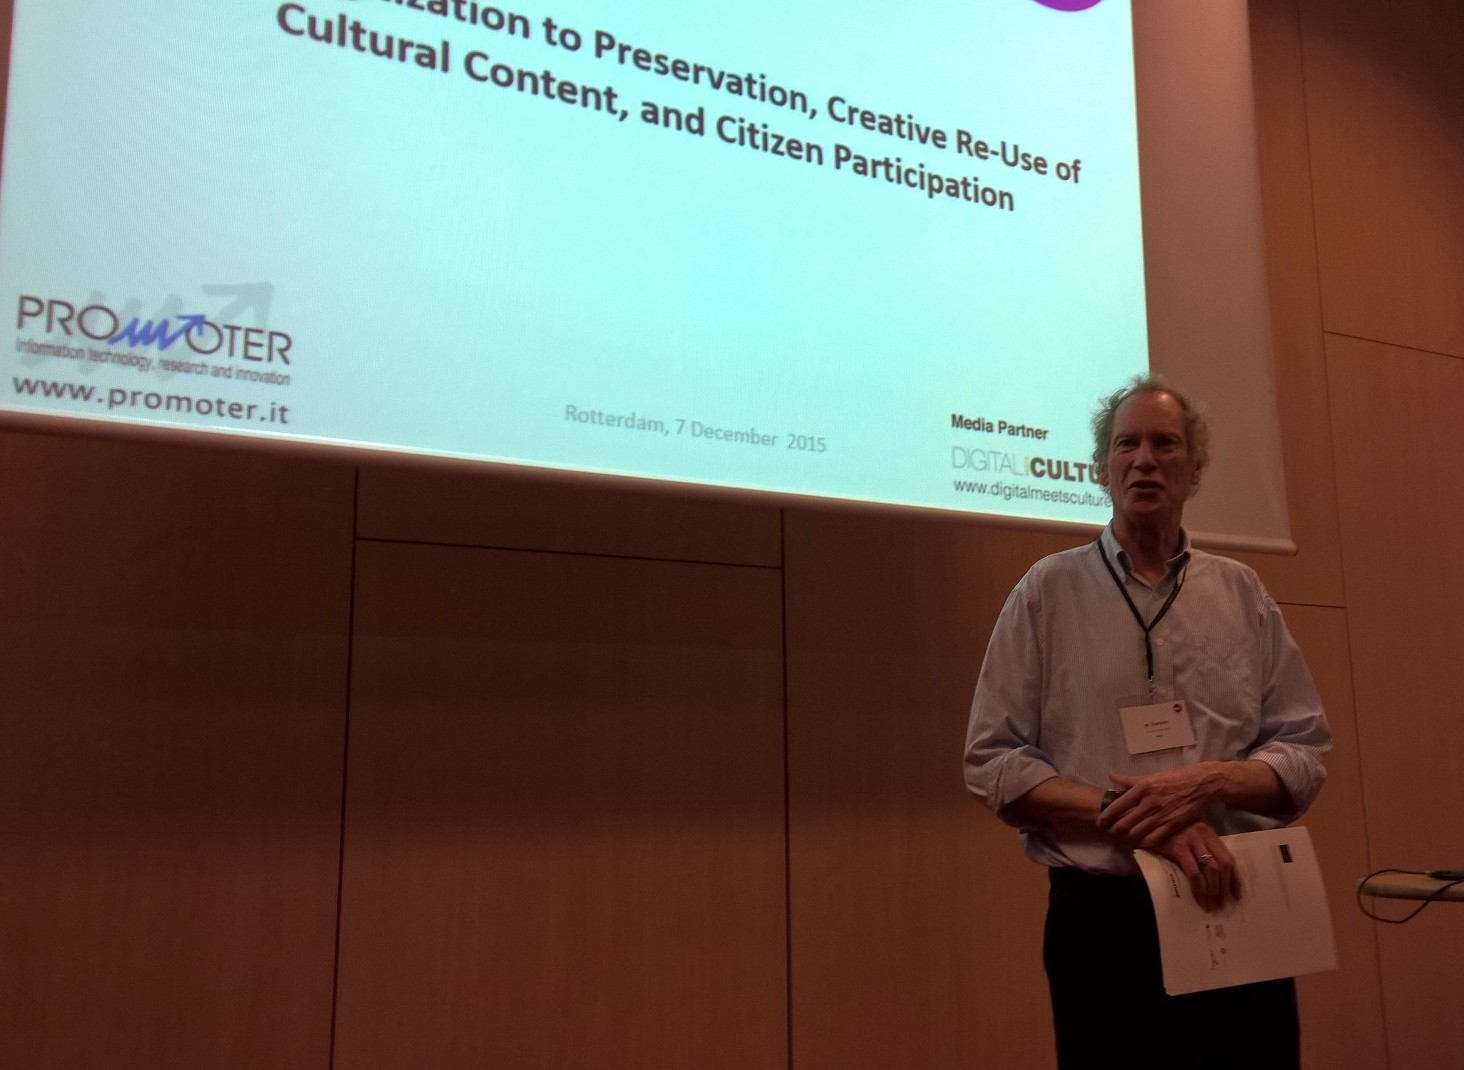 Neil Forbes, from Coventry University, presented CIVIC EPISTEMOLOGIES @ DISH2015, Rotterdam 7 December 2015